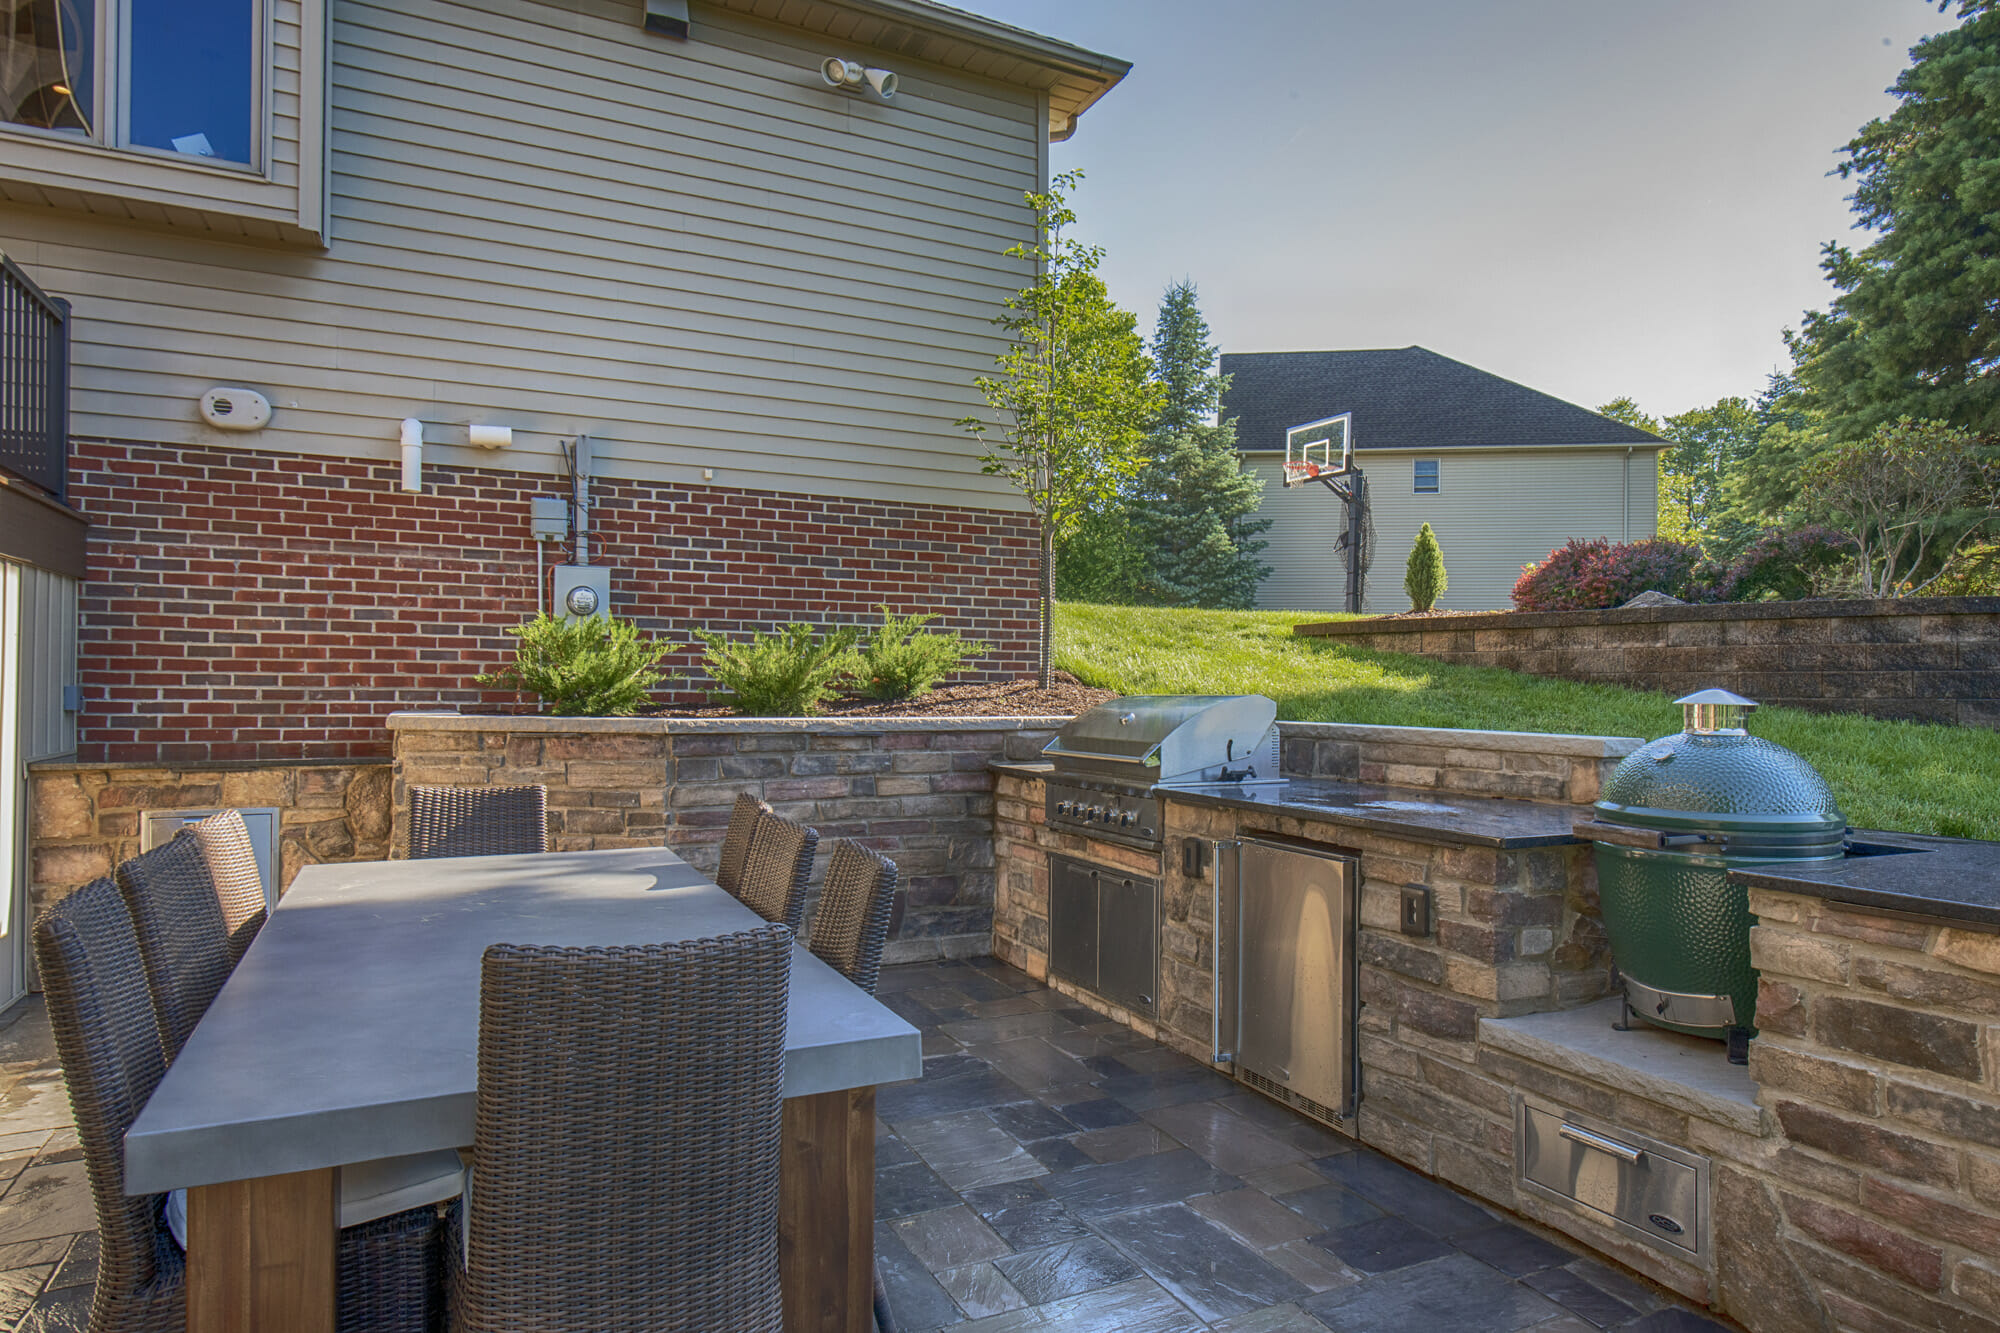 Outdoor grill area